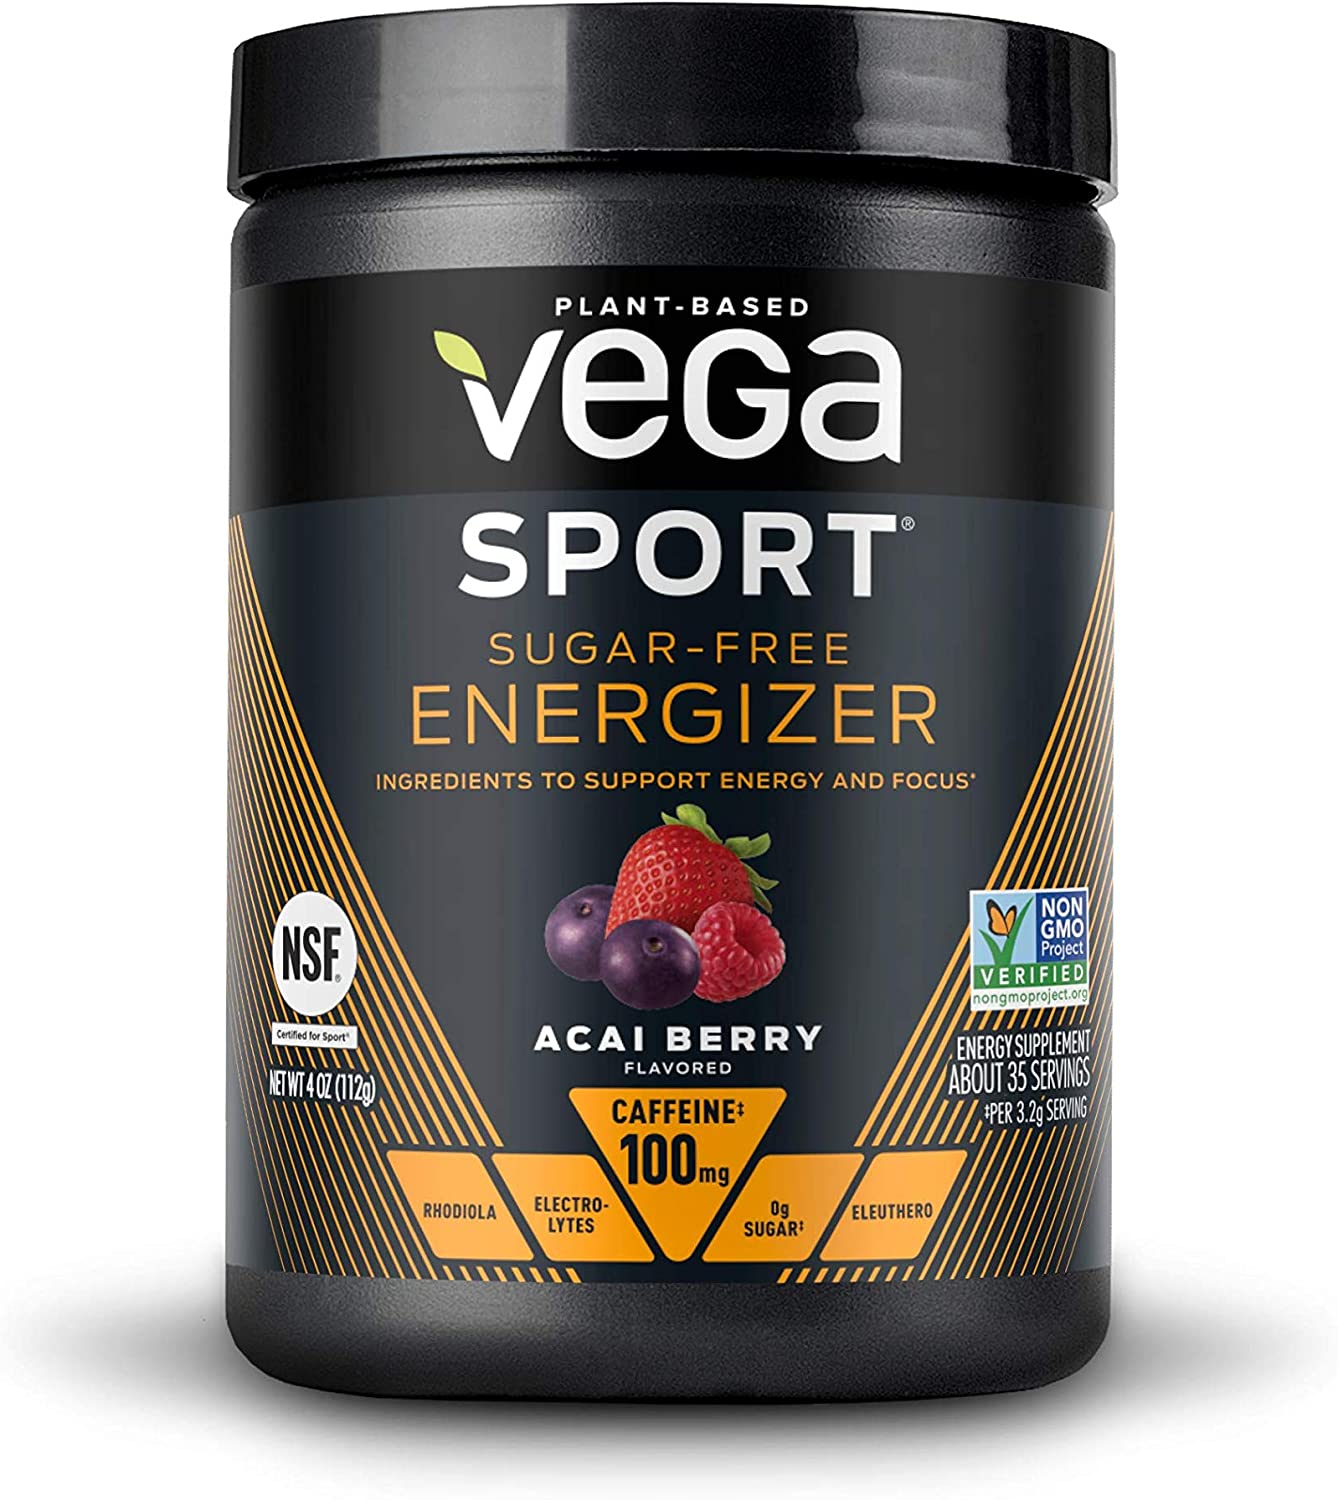 Vega Sport Sugar Free Energzier Acai Berry (35 Servings, 4.0 Ounce Tub) - Vegan, Keto-Friendly, Gluten Free, Sugar Free, All Natural, Pre Workout Powder, Non GMO (Packaging May Vary)